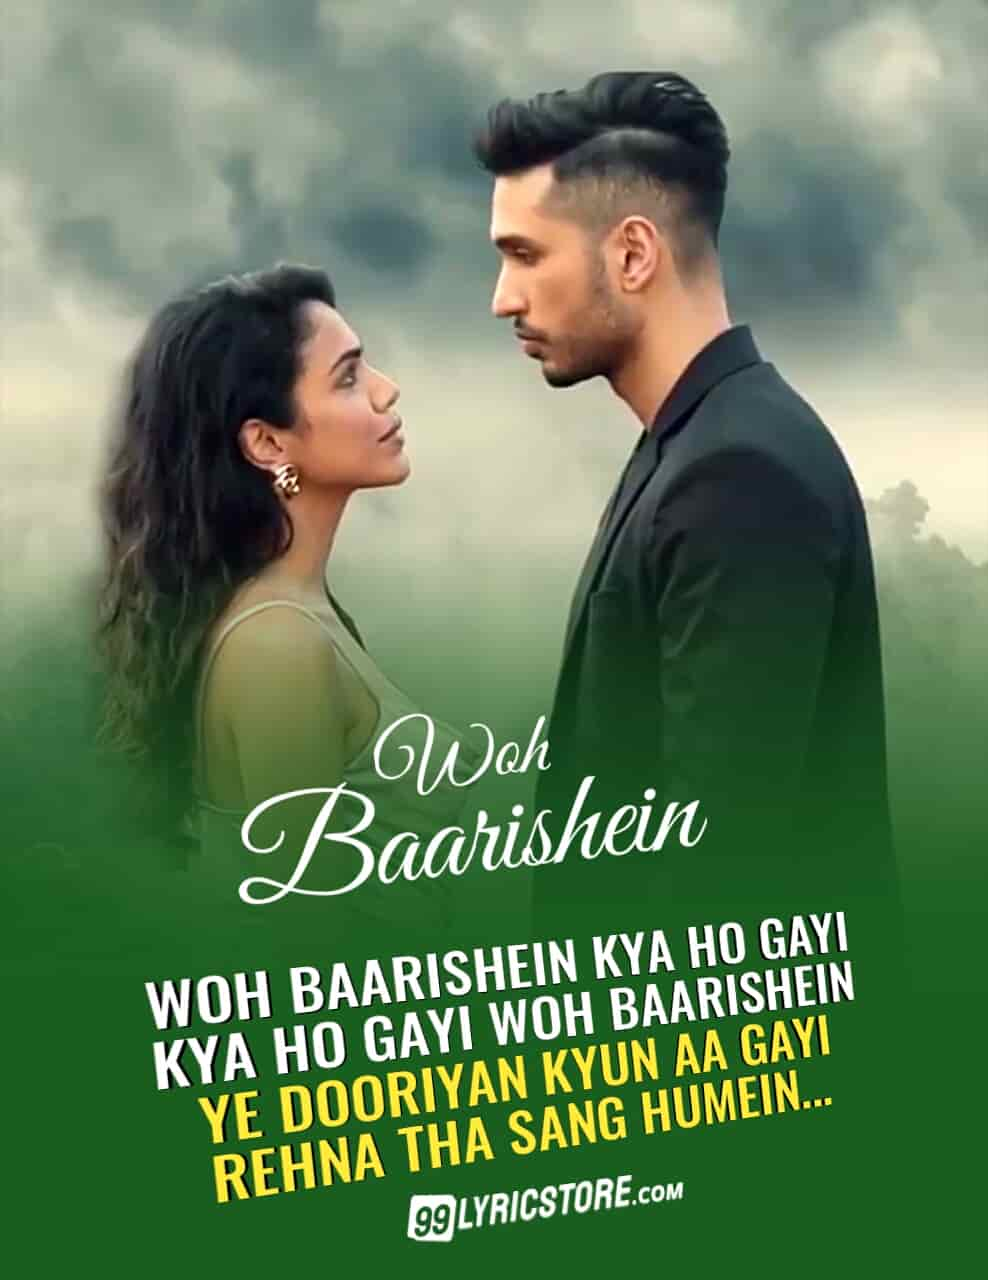 Woh baarishein sad song sung by Arjun Kanungo